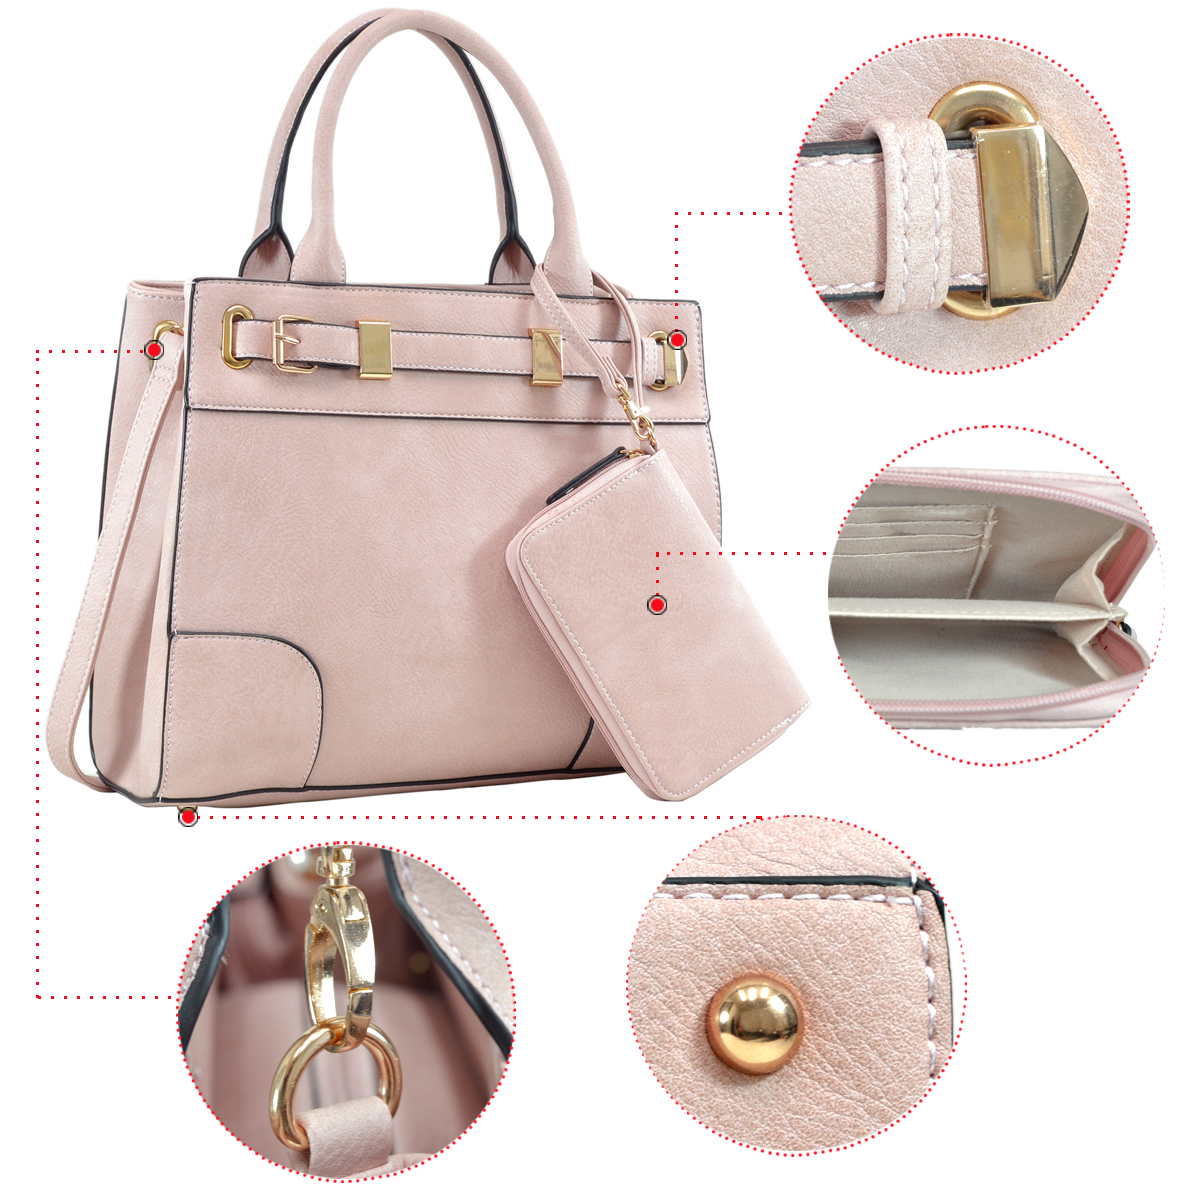 Medium Satchel with Front Belted Gold Plated Hinge and Detachable Matching Wristlet